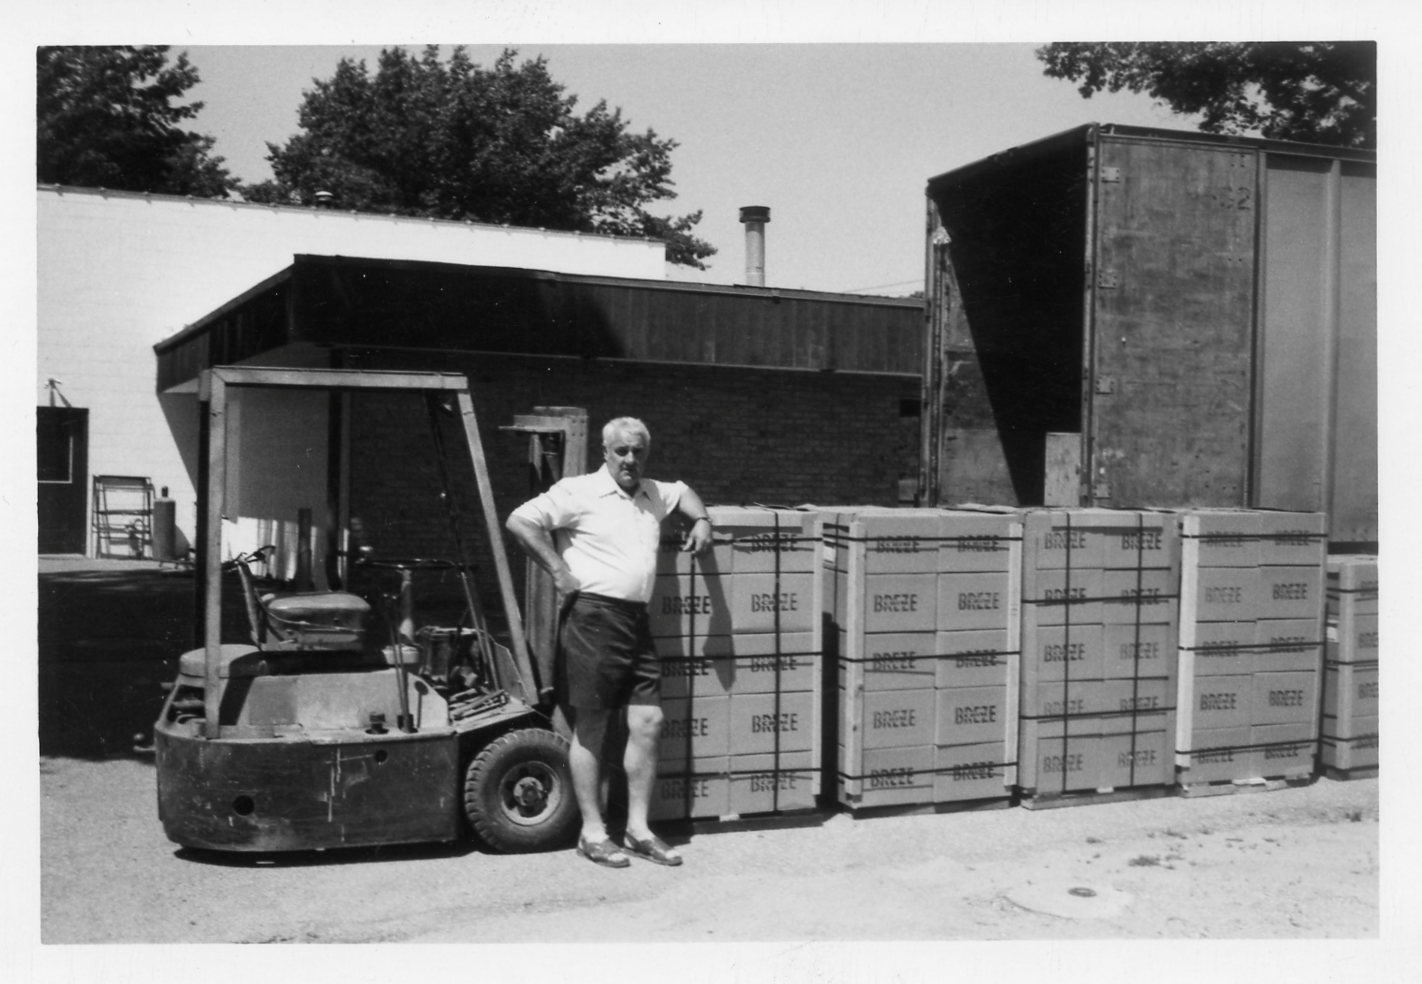 Nelson Reinke pauses for a photo with pallets of the Chimney Breeze stove pipe fan that was one of several of his business ventures during his ambitious career of self-employment.